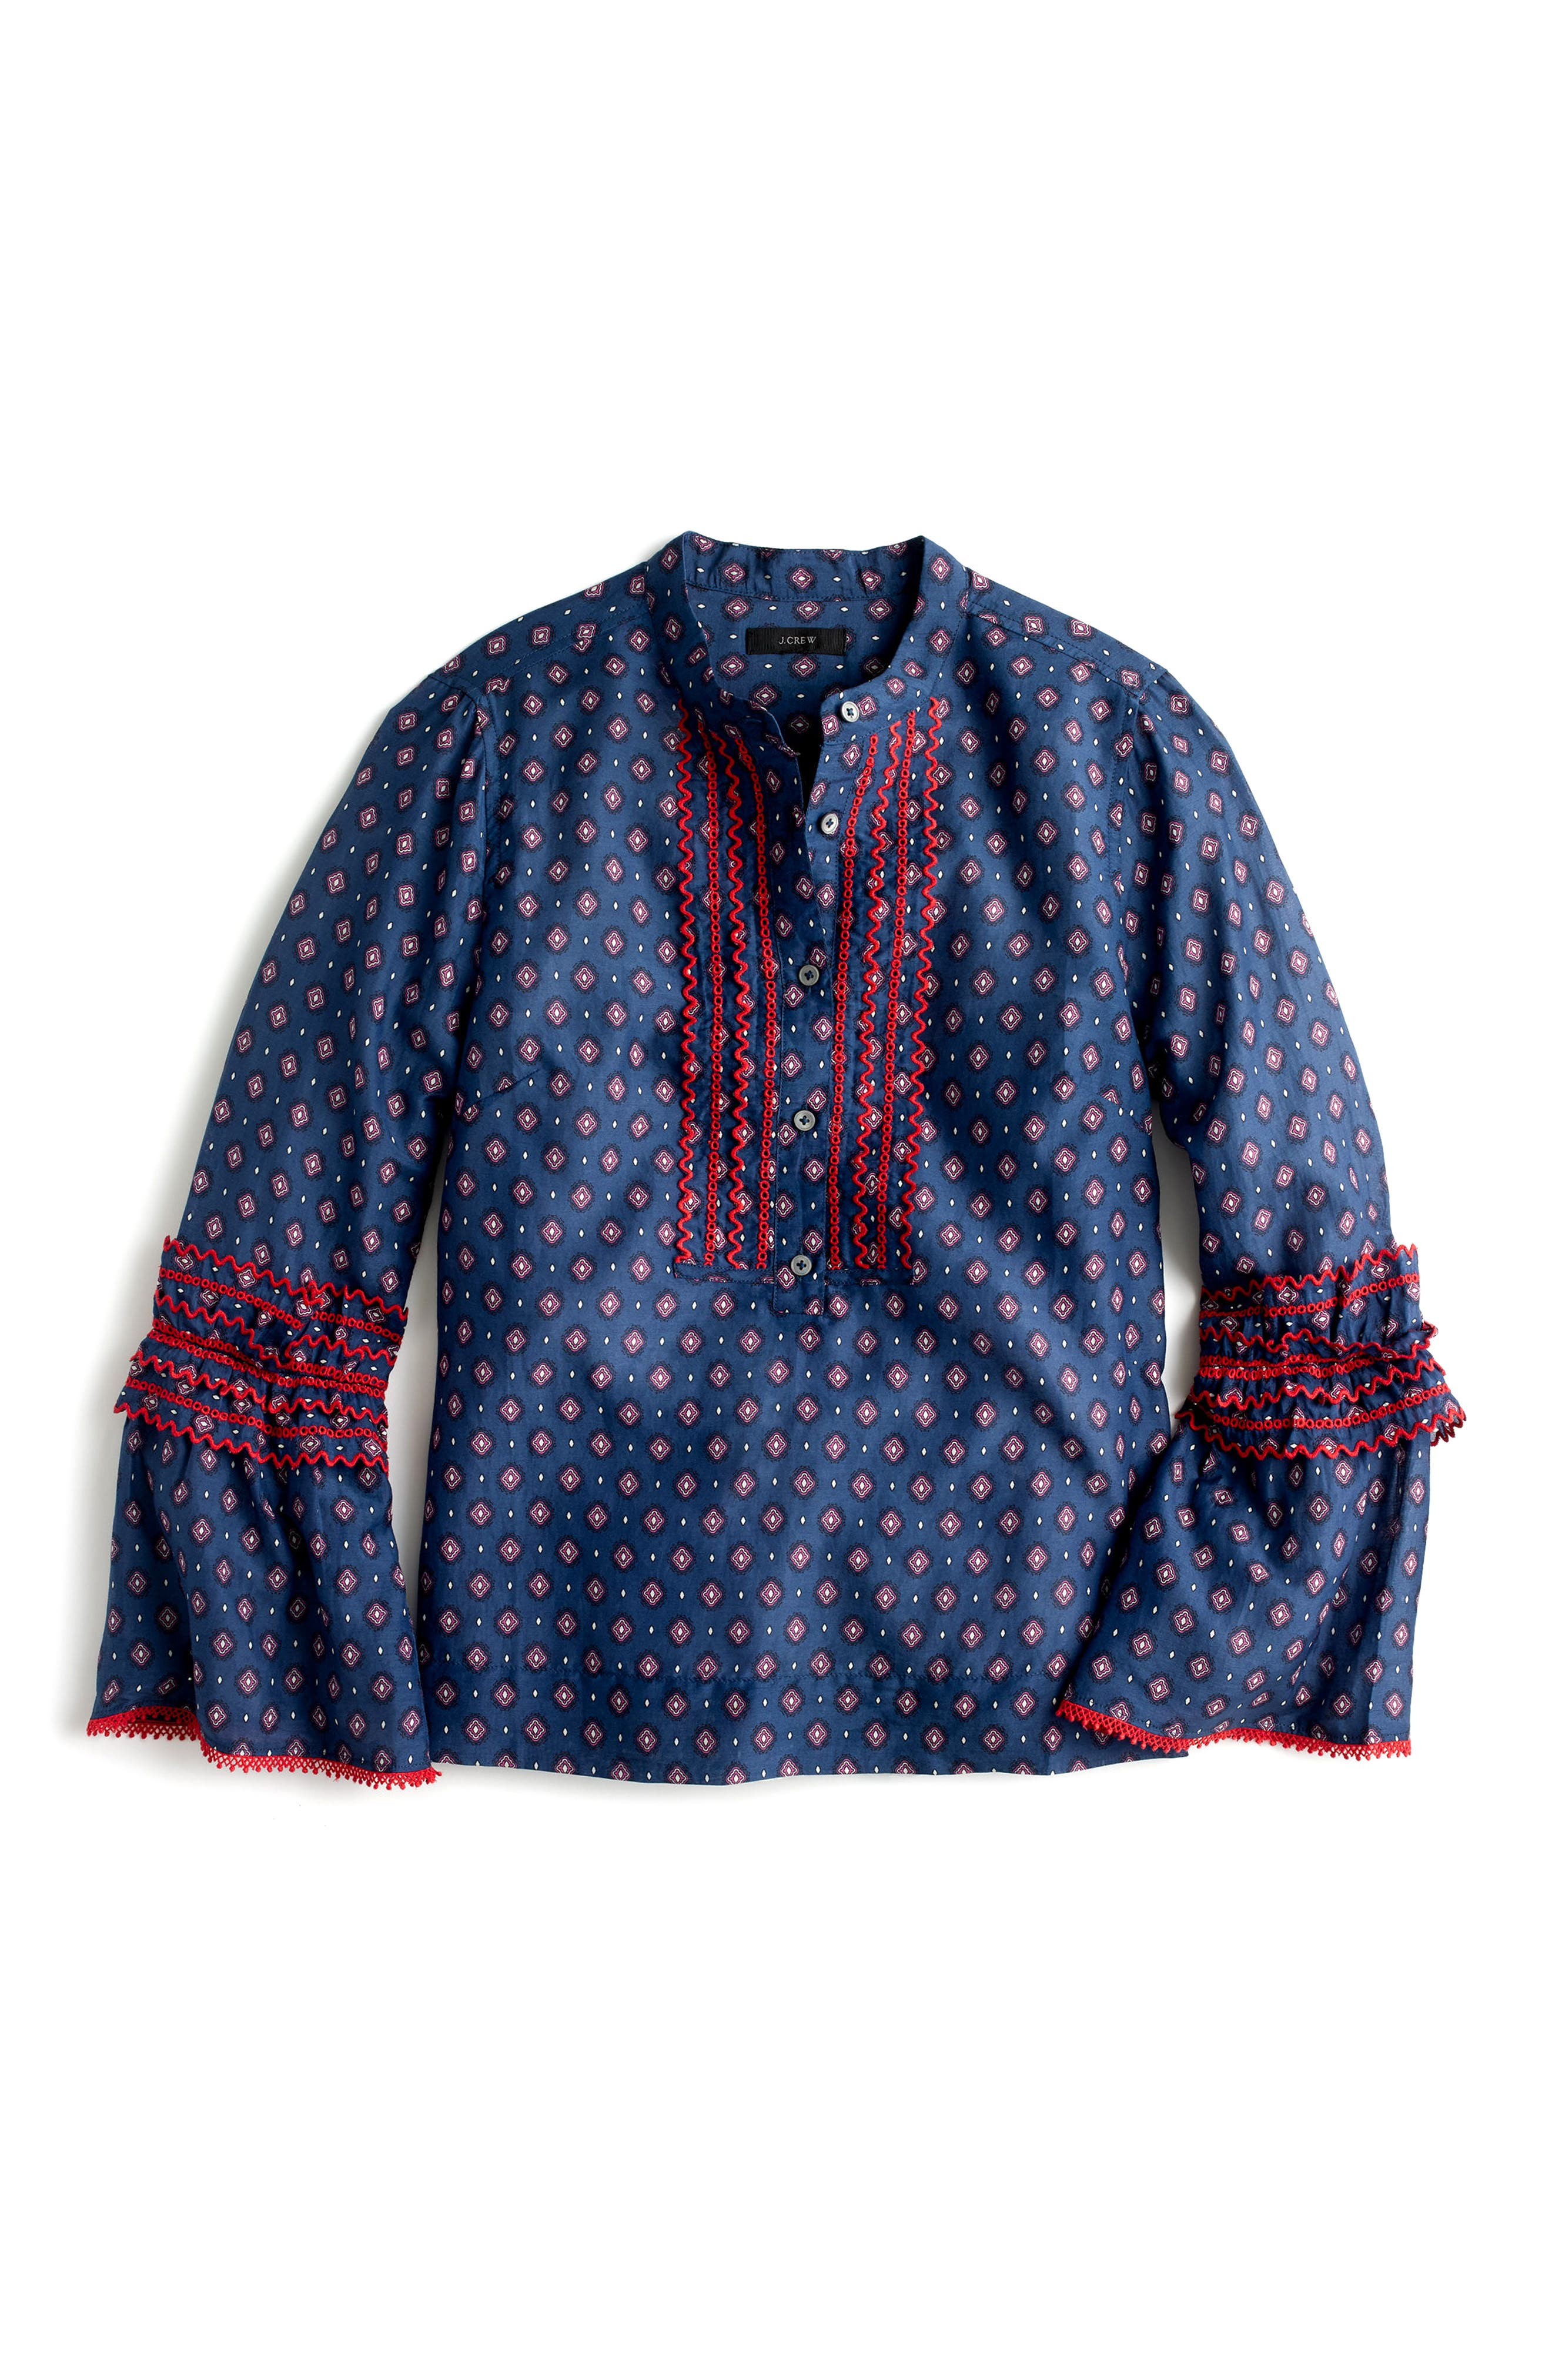 Ludwig Embroidered Bell Sleeve Top,                             Alternate thumbnail 4, color,                             Indigo